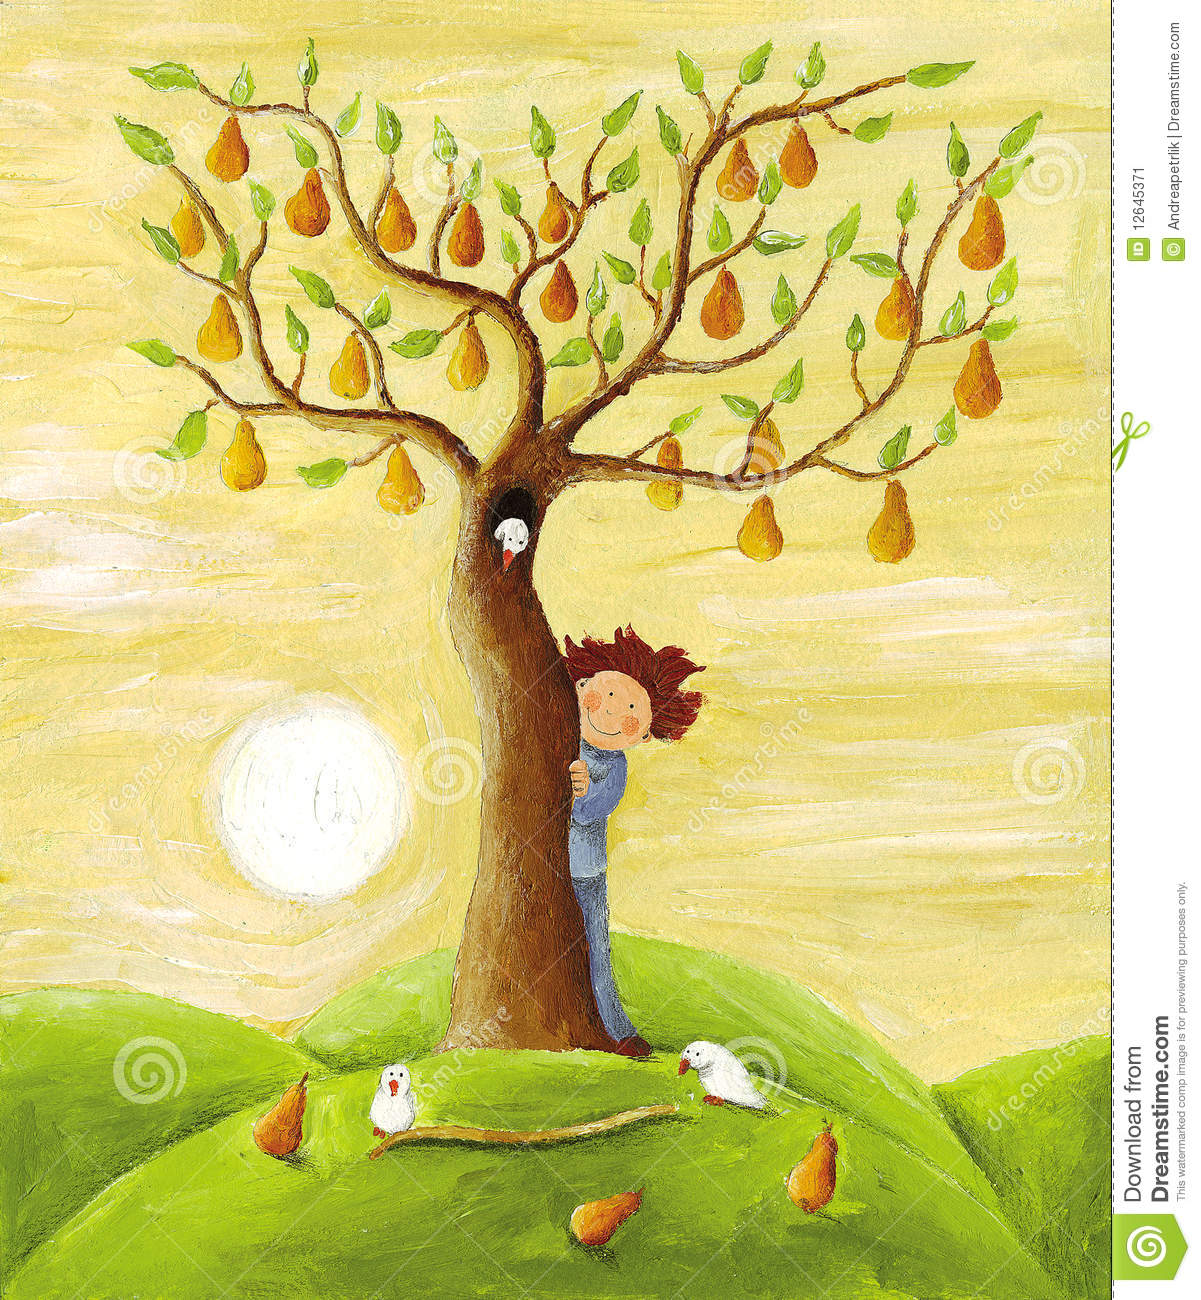 Boy and pear tree